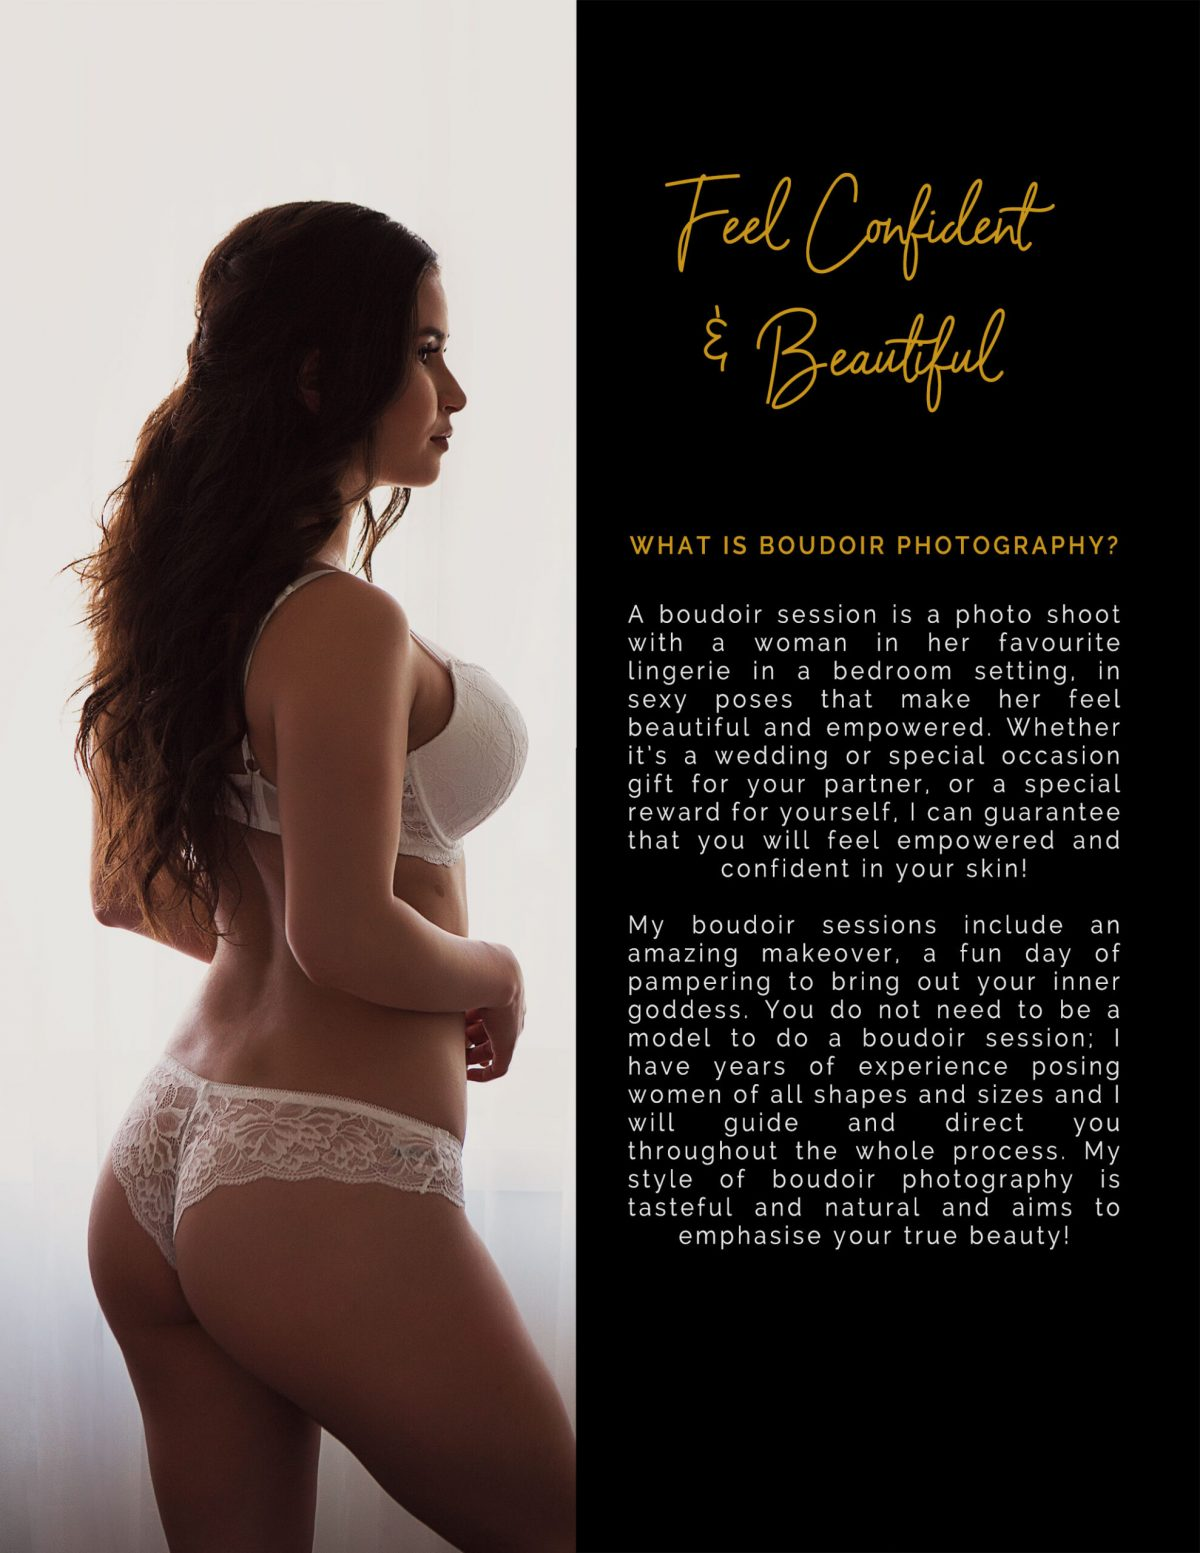 A4-03-What-is-boudoir